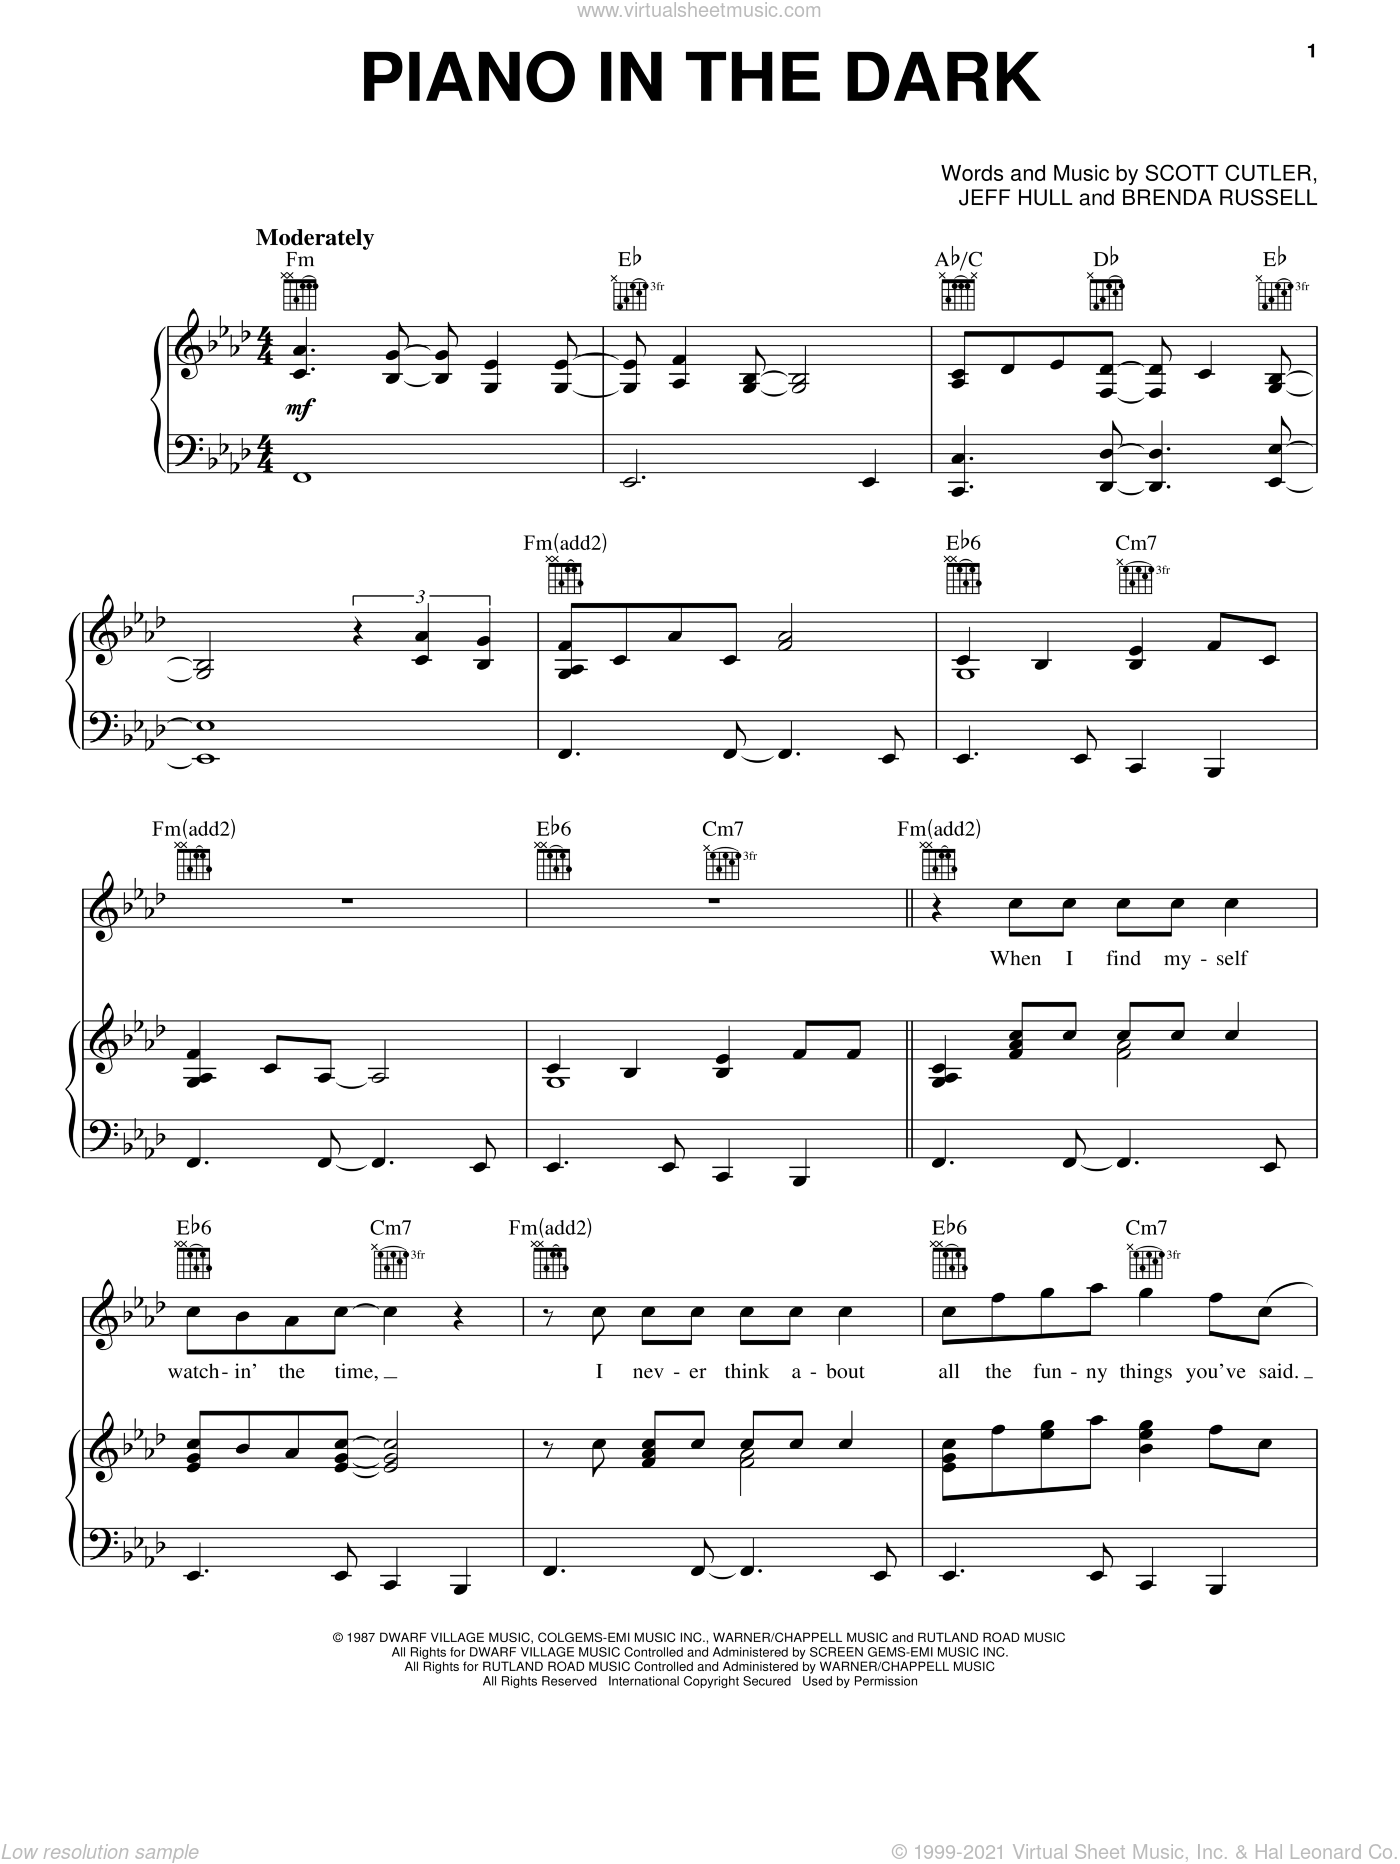 Piano In The Dark sheet music for voice, piano or guitar by Brenda Russell, Jeff Hull and Scott Cutler, intermediate skill level